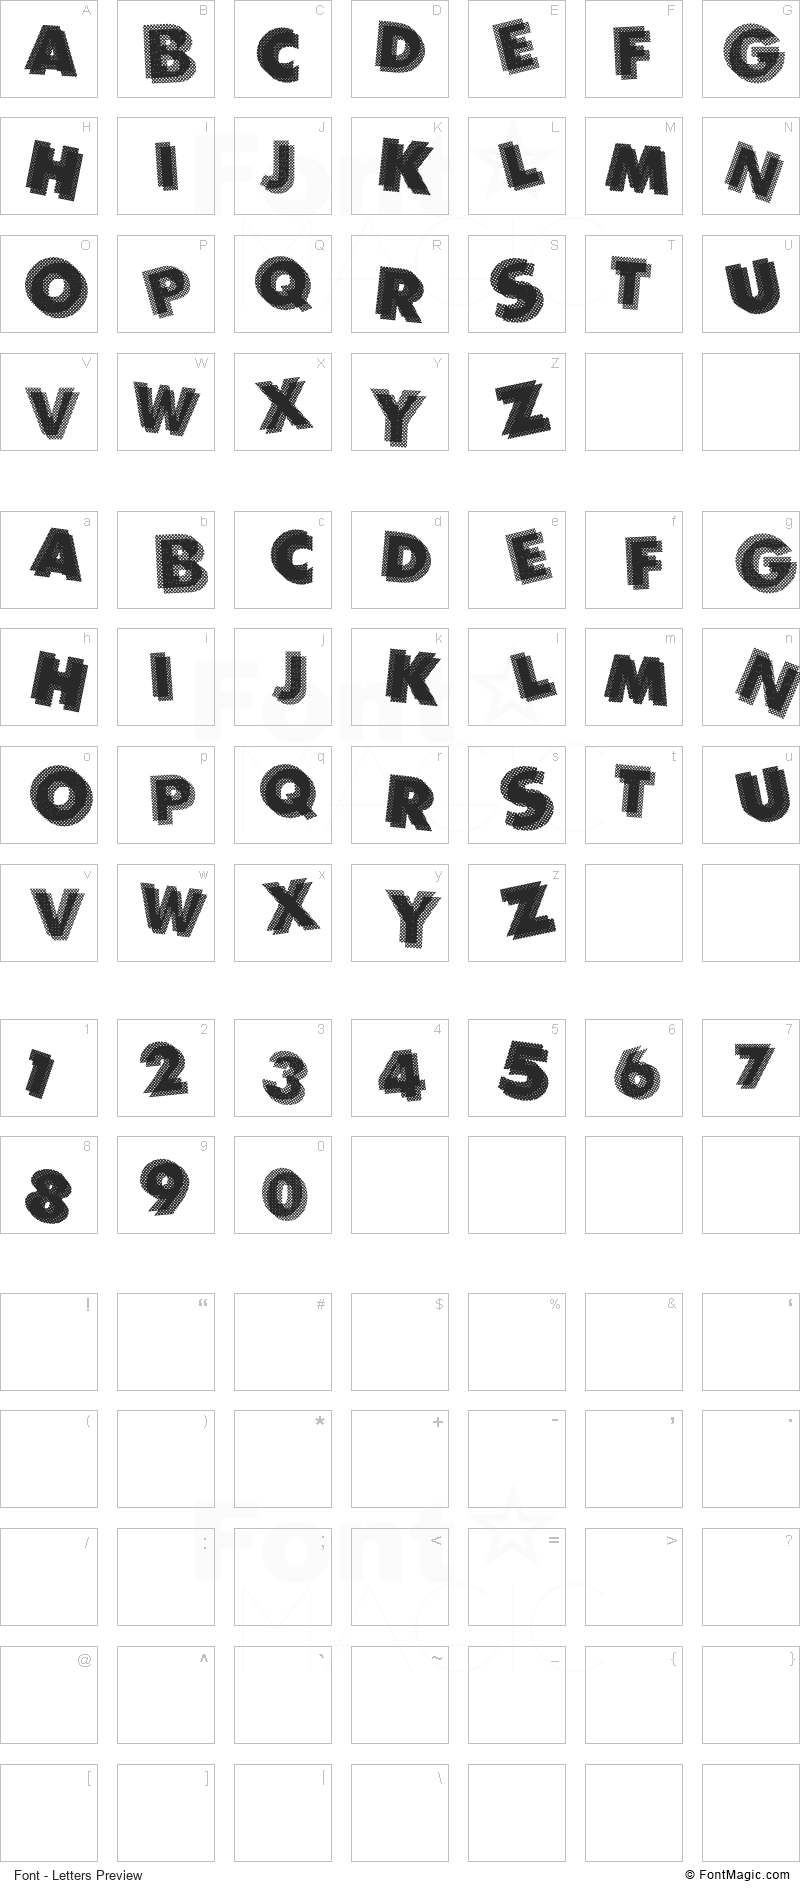 Panic Font - All Latters Preview Chart